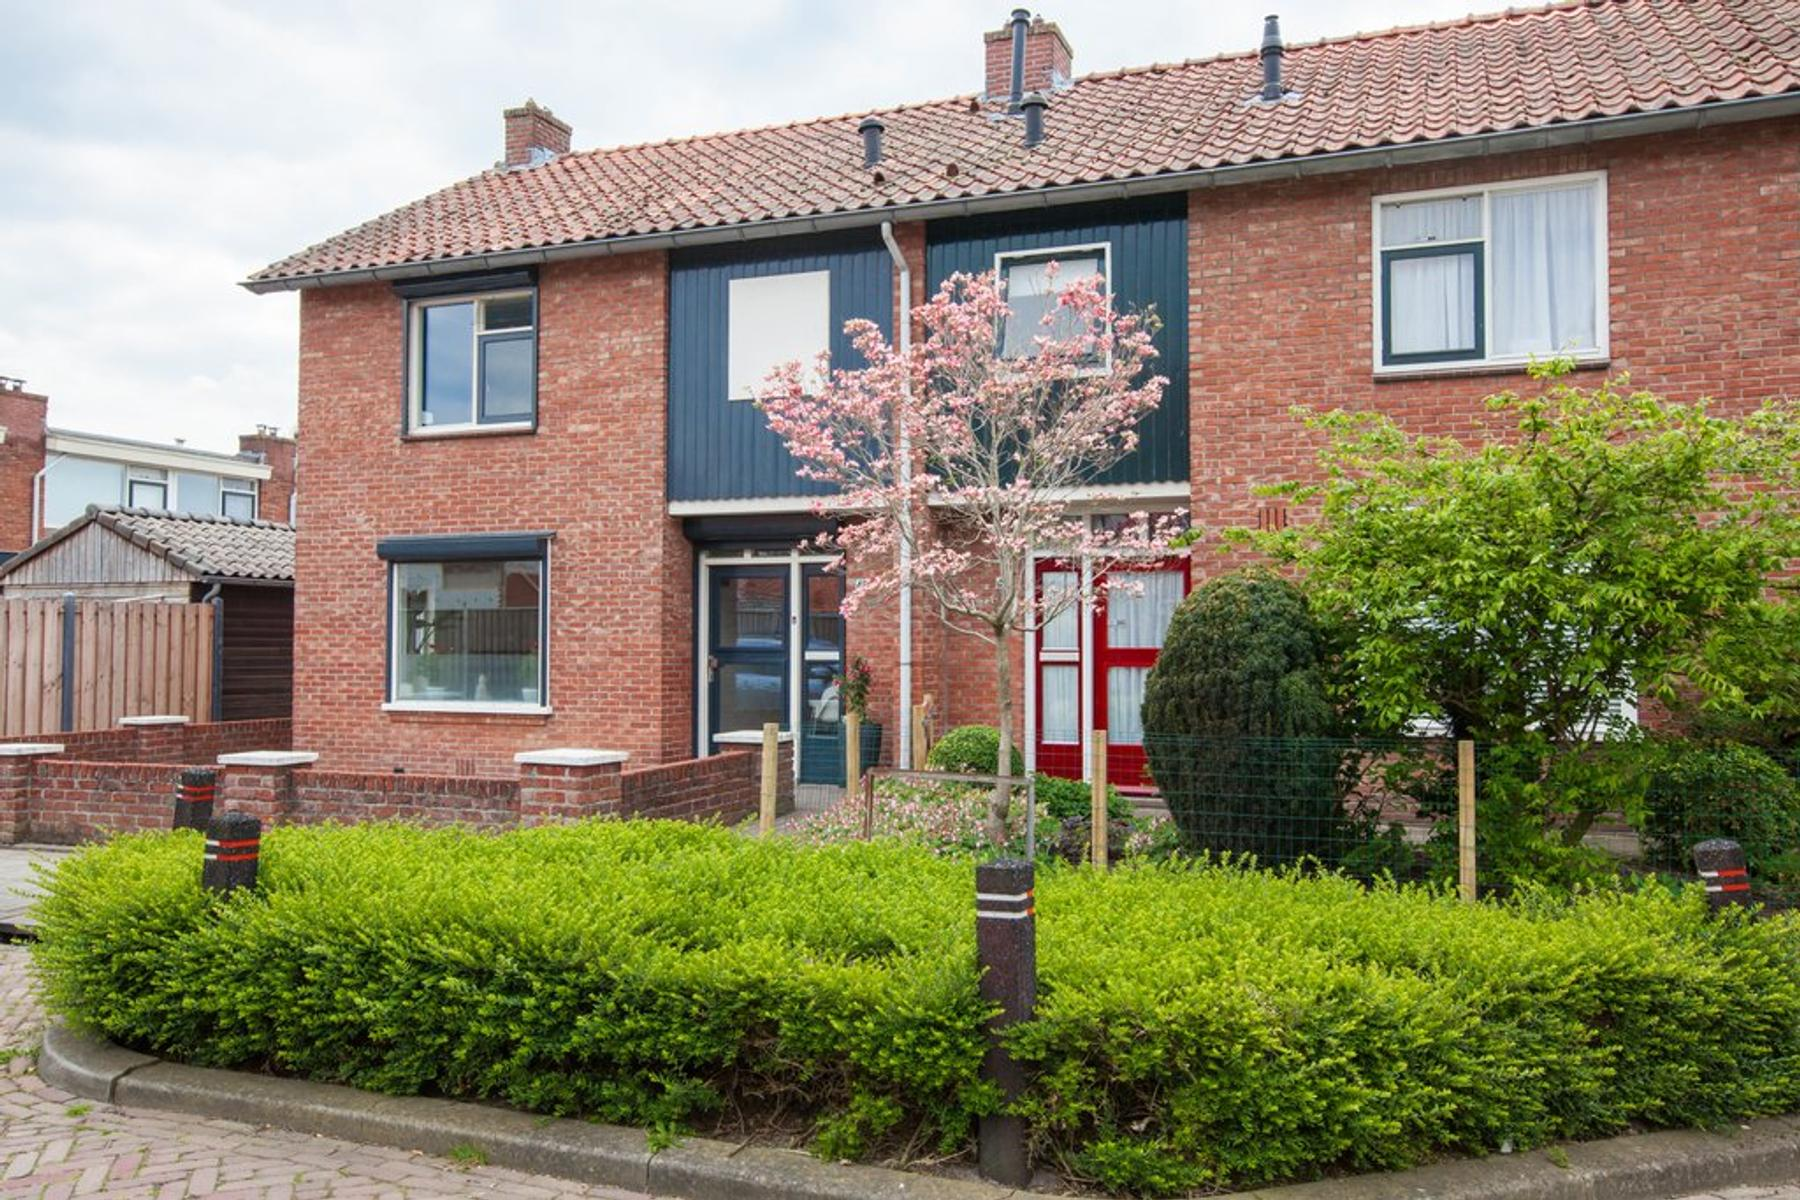 Elzenstraat 48 in Winterswijk 7101 TT